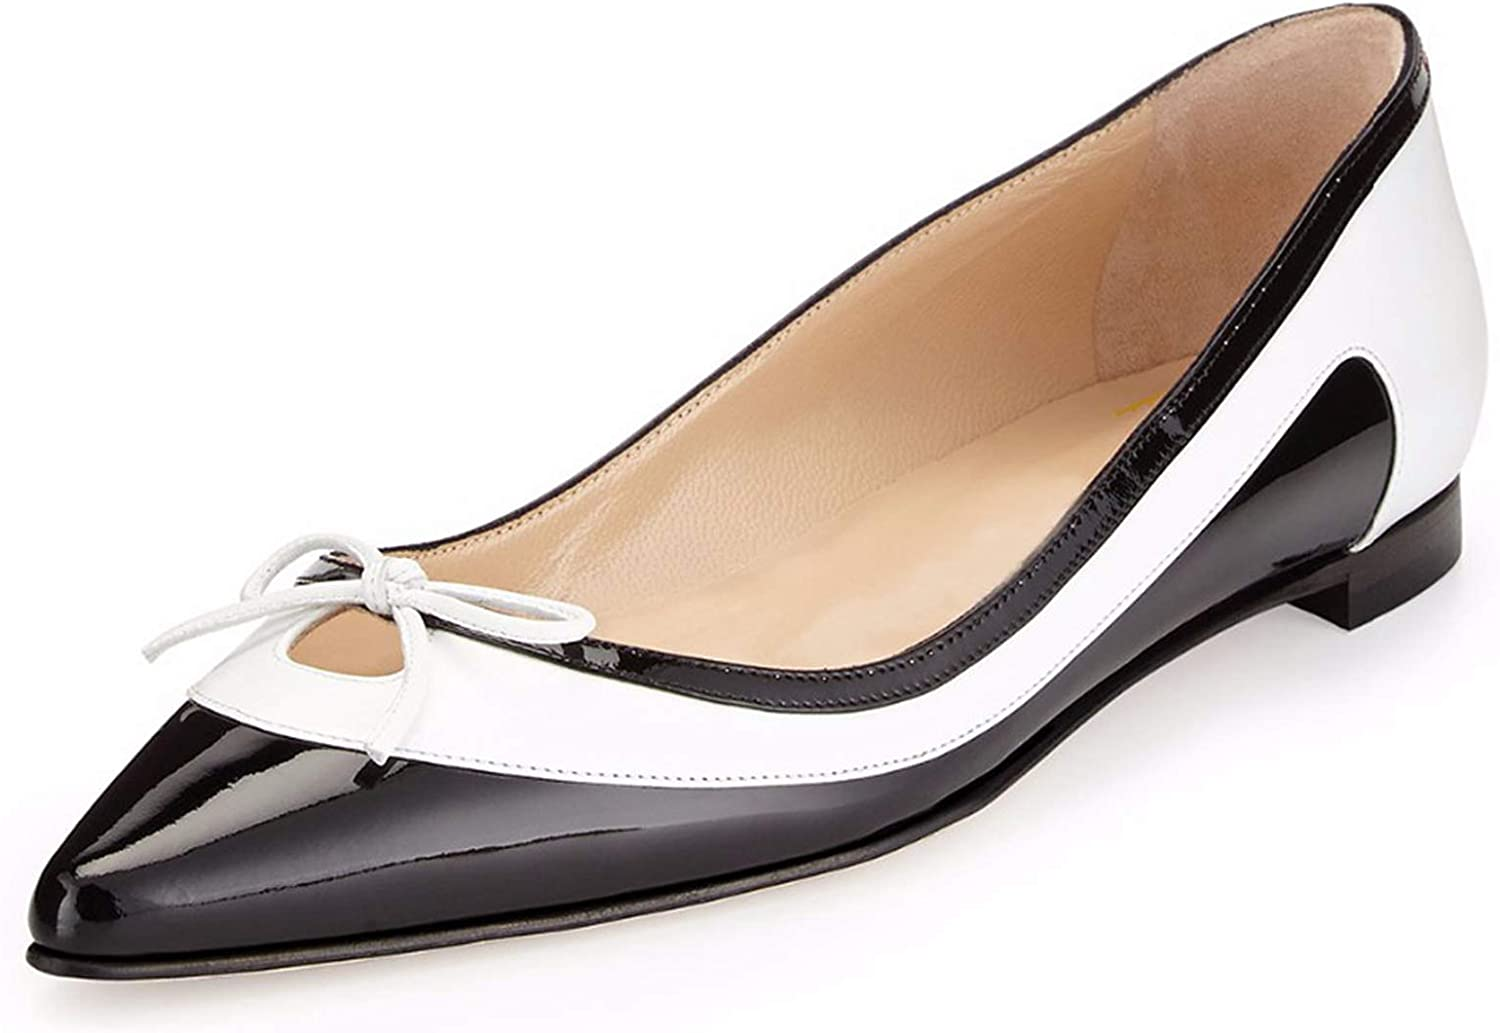 Disinfom Concise Women Flats Pointed Toe 4 Seasons Flat shoes Elegant Black and White shoes Woman Plus Size 4-15